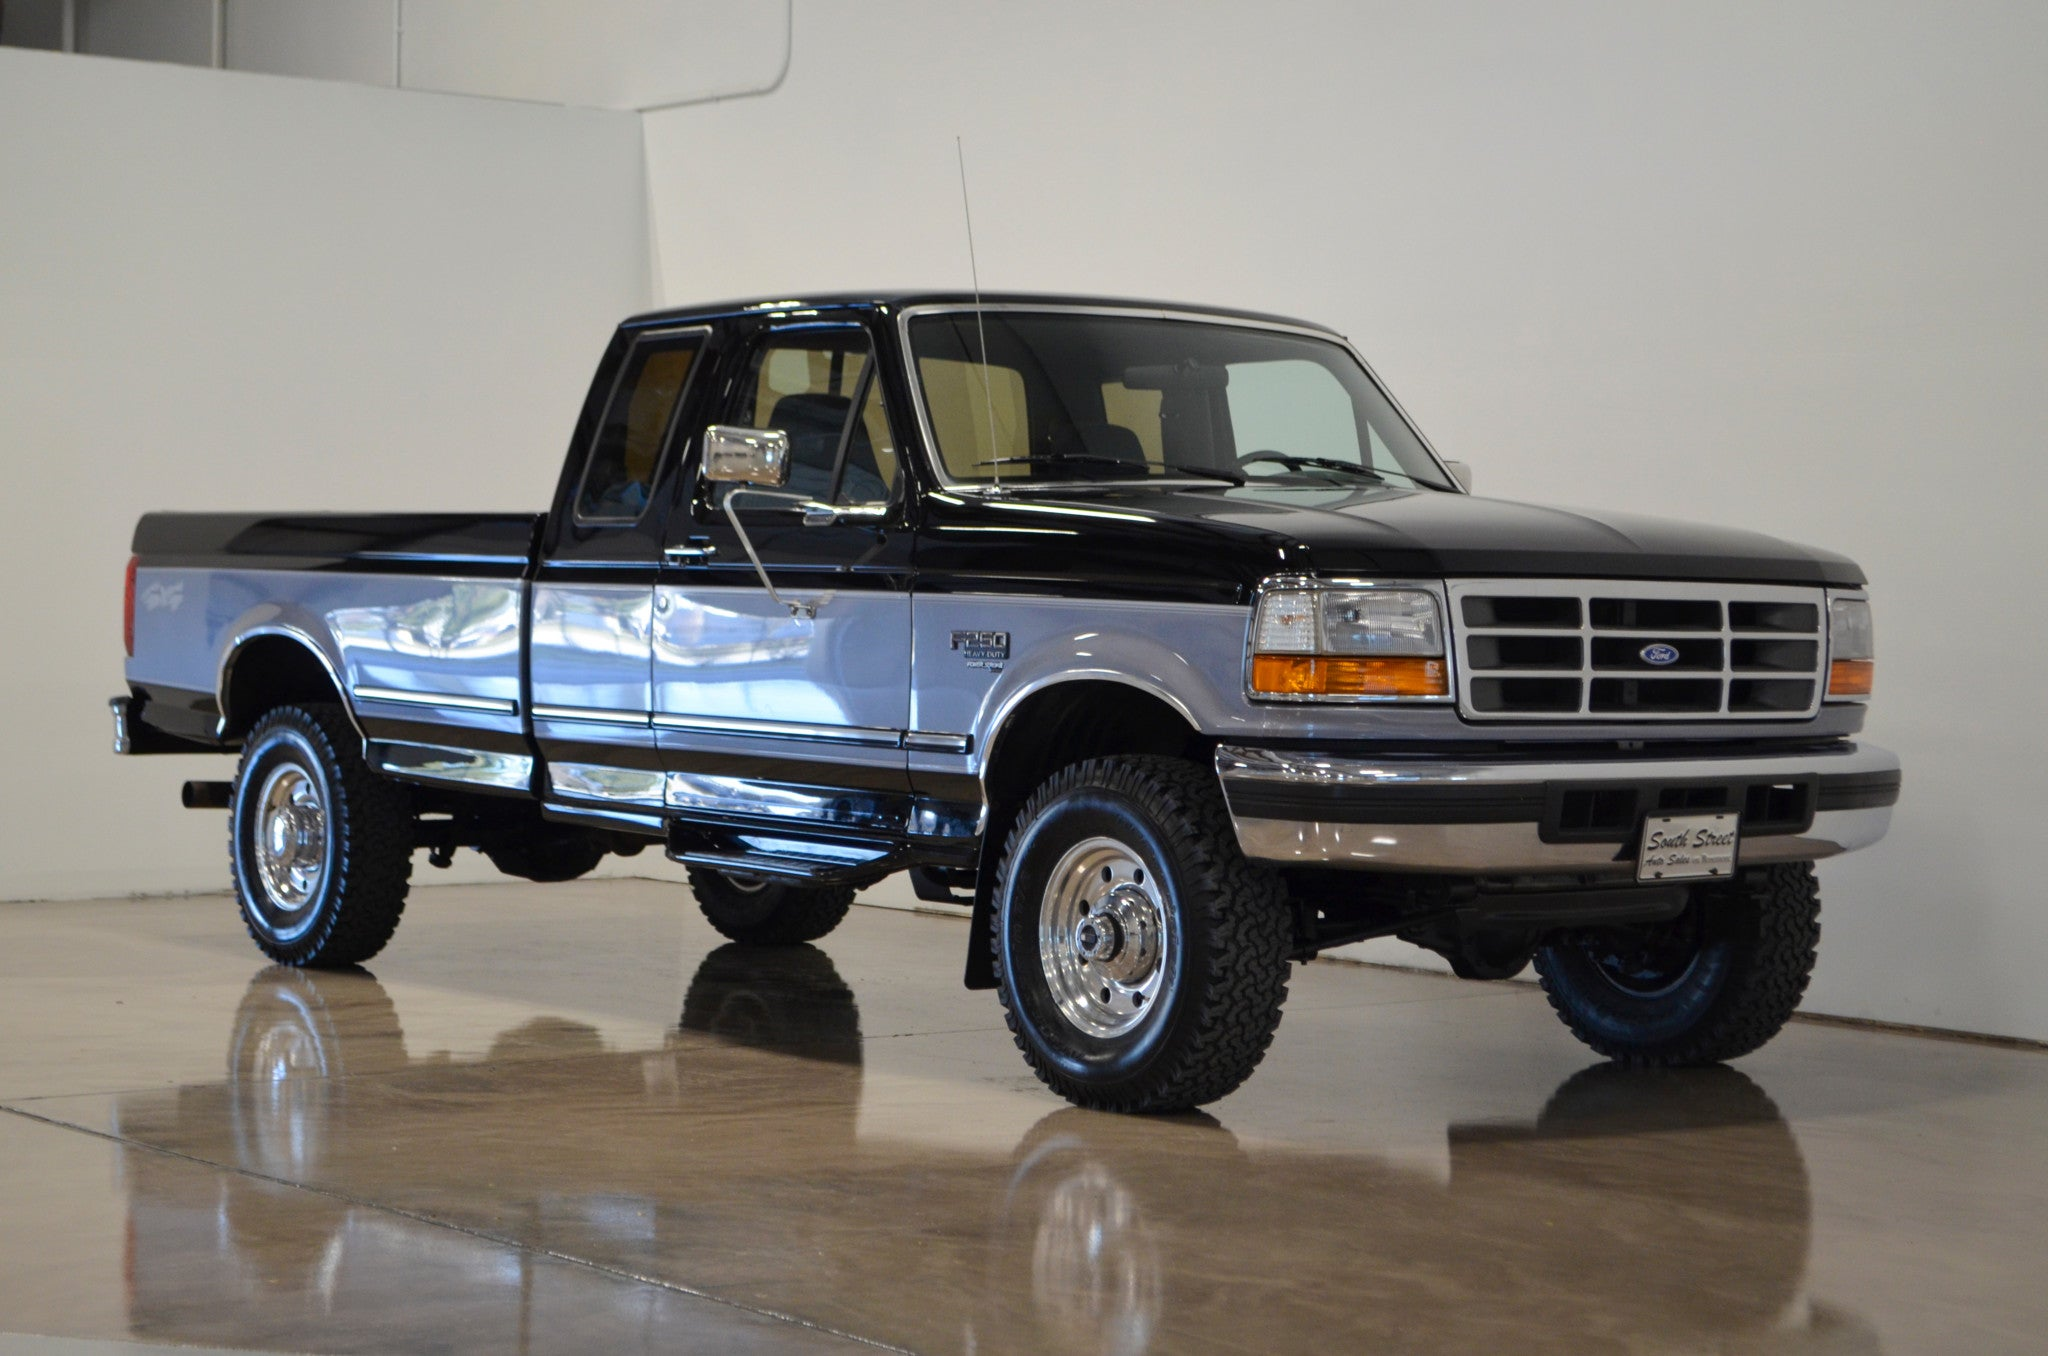 Buy Pickup Perfection With This 49k Mile 1997 Ford F 250 Power Stroke Diesel